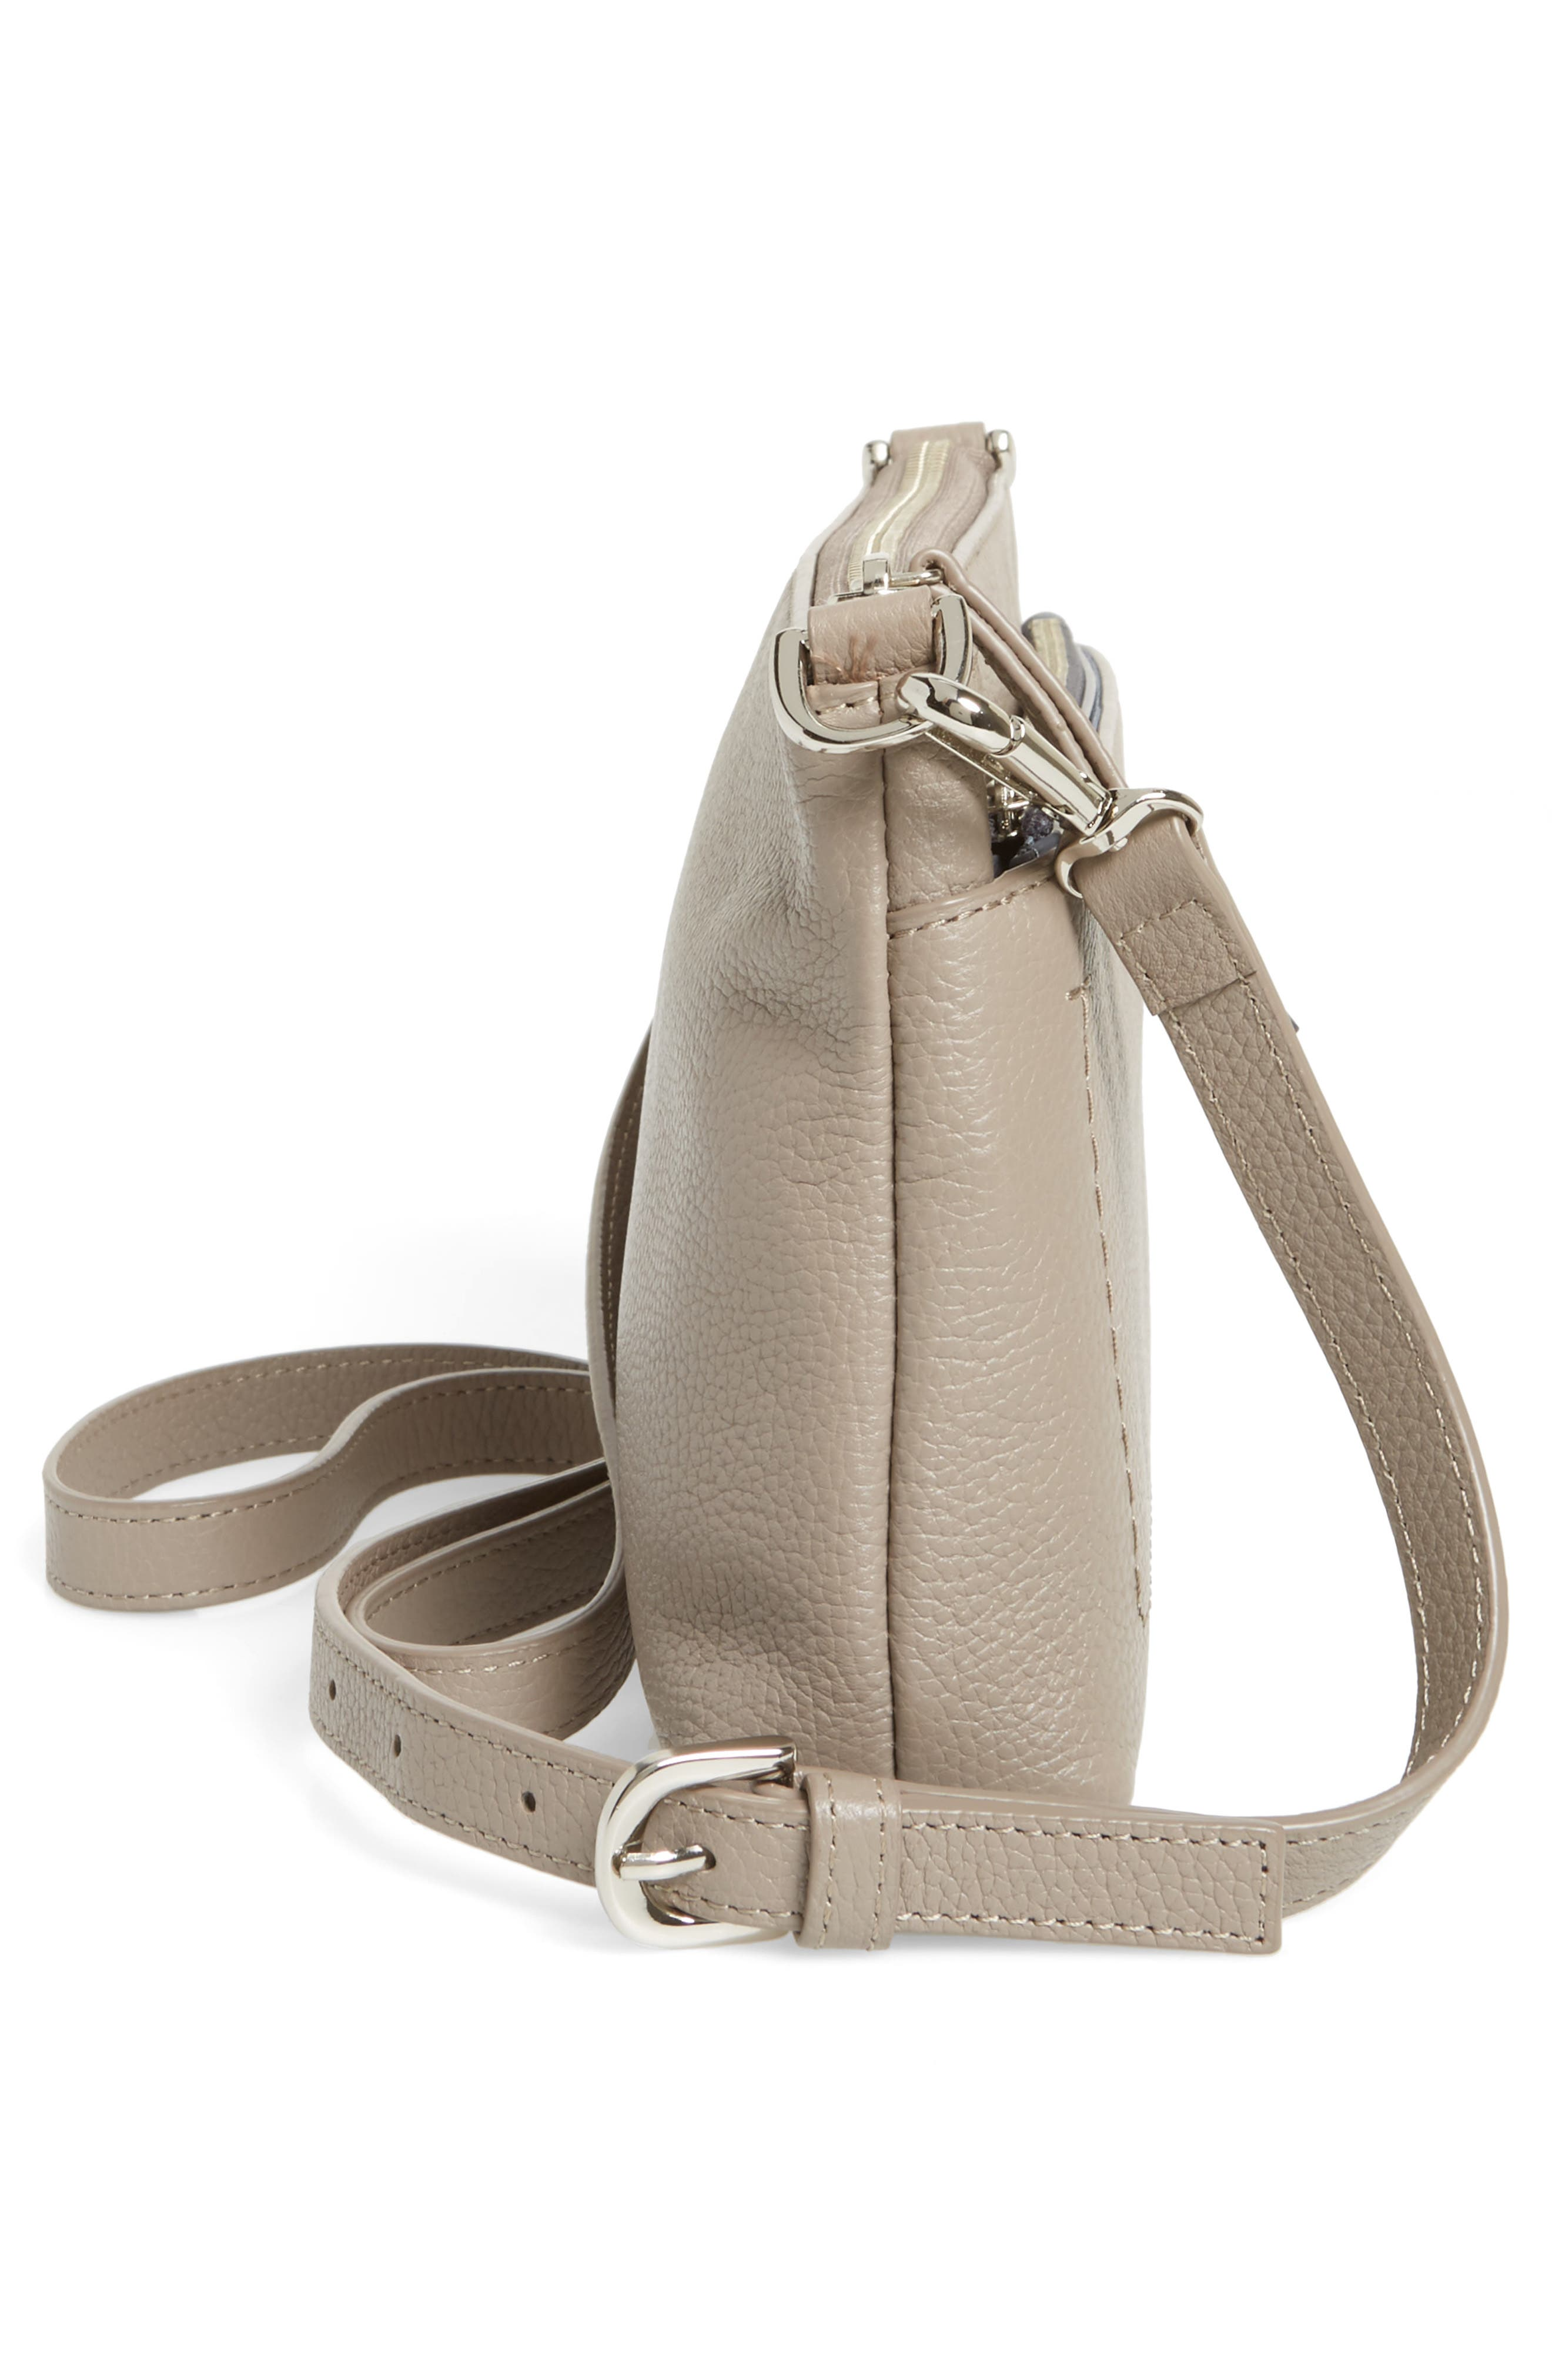 Brixton Convertible Leather Crossbody Bag with Pop-Out Card Holder,                             Alternate thumbnail 6, color,                             GREY TAUPE